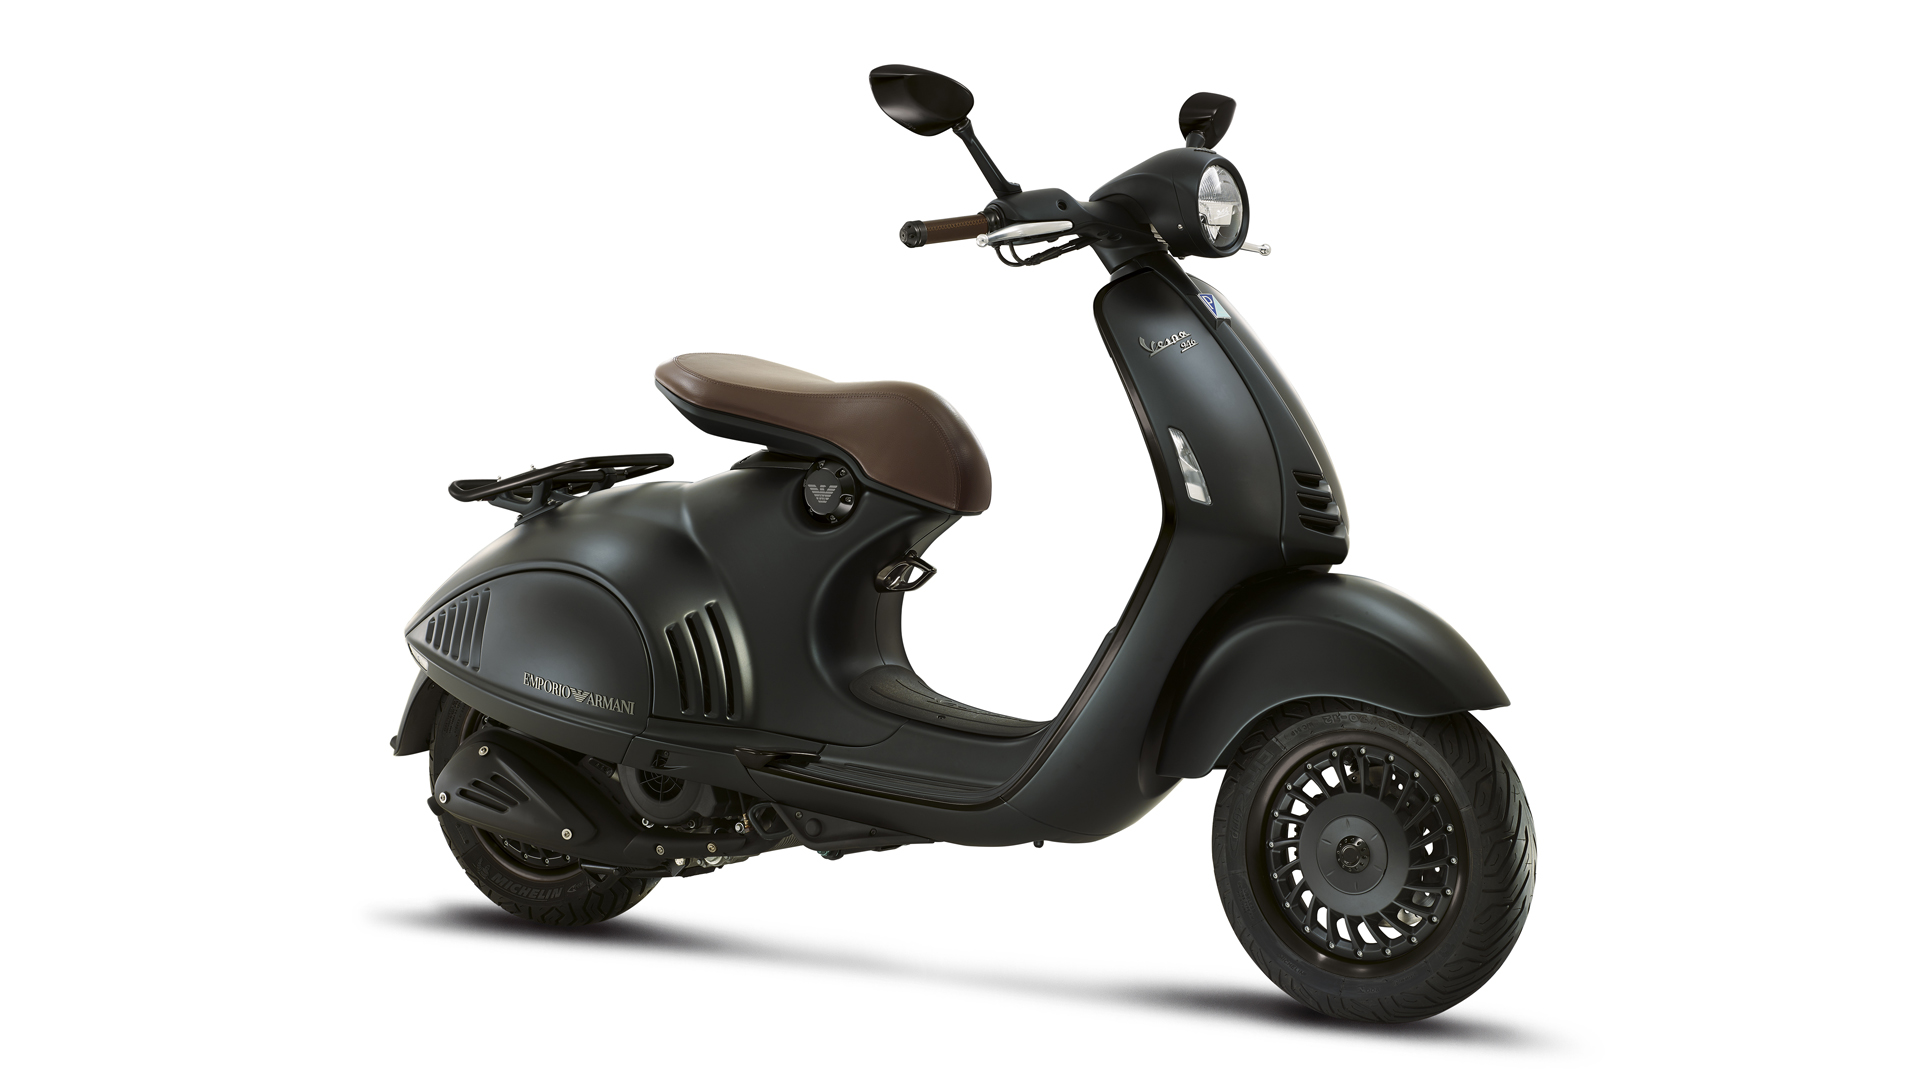 Piaggio Vespa 946 Emporio Armani Photos Images And